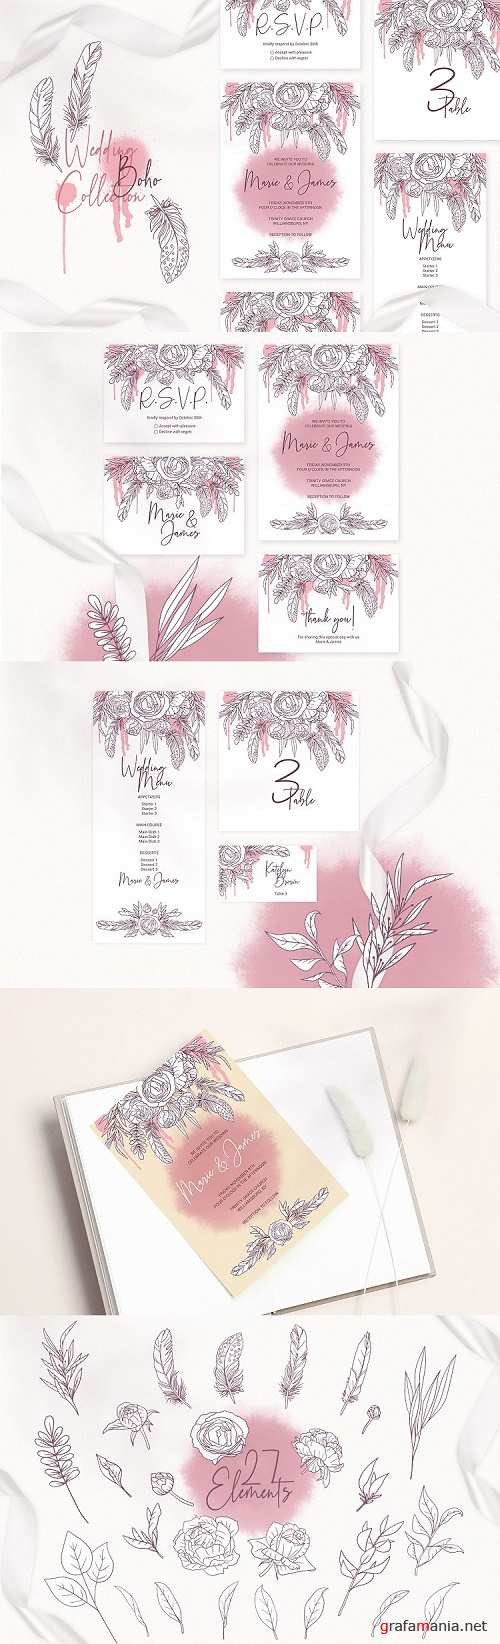 Boho Wedding Invitation Cards. Floral Printable Template - 457708